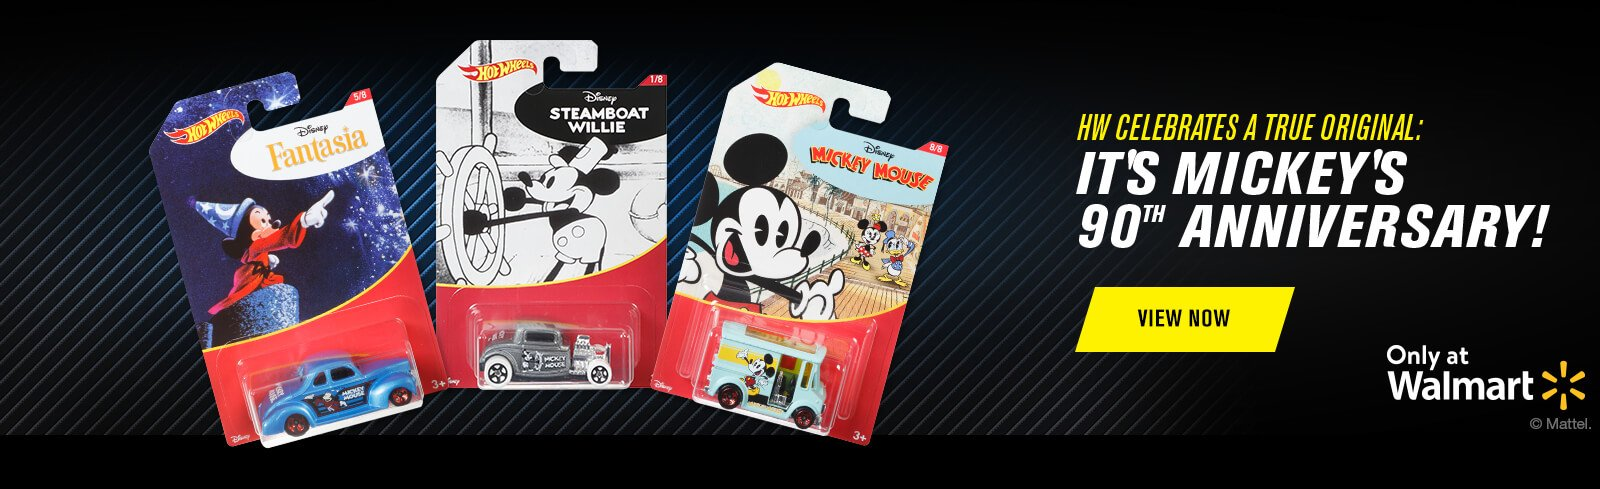 HW Celebrates a True Original: It's Mickey's 90th Anniversary!